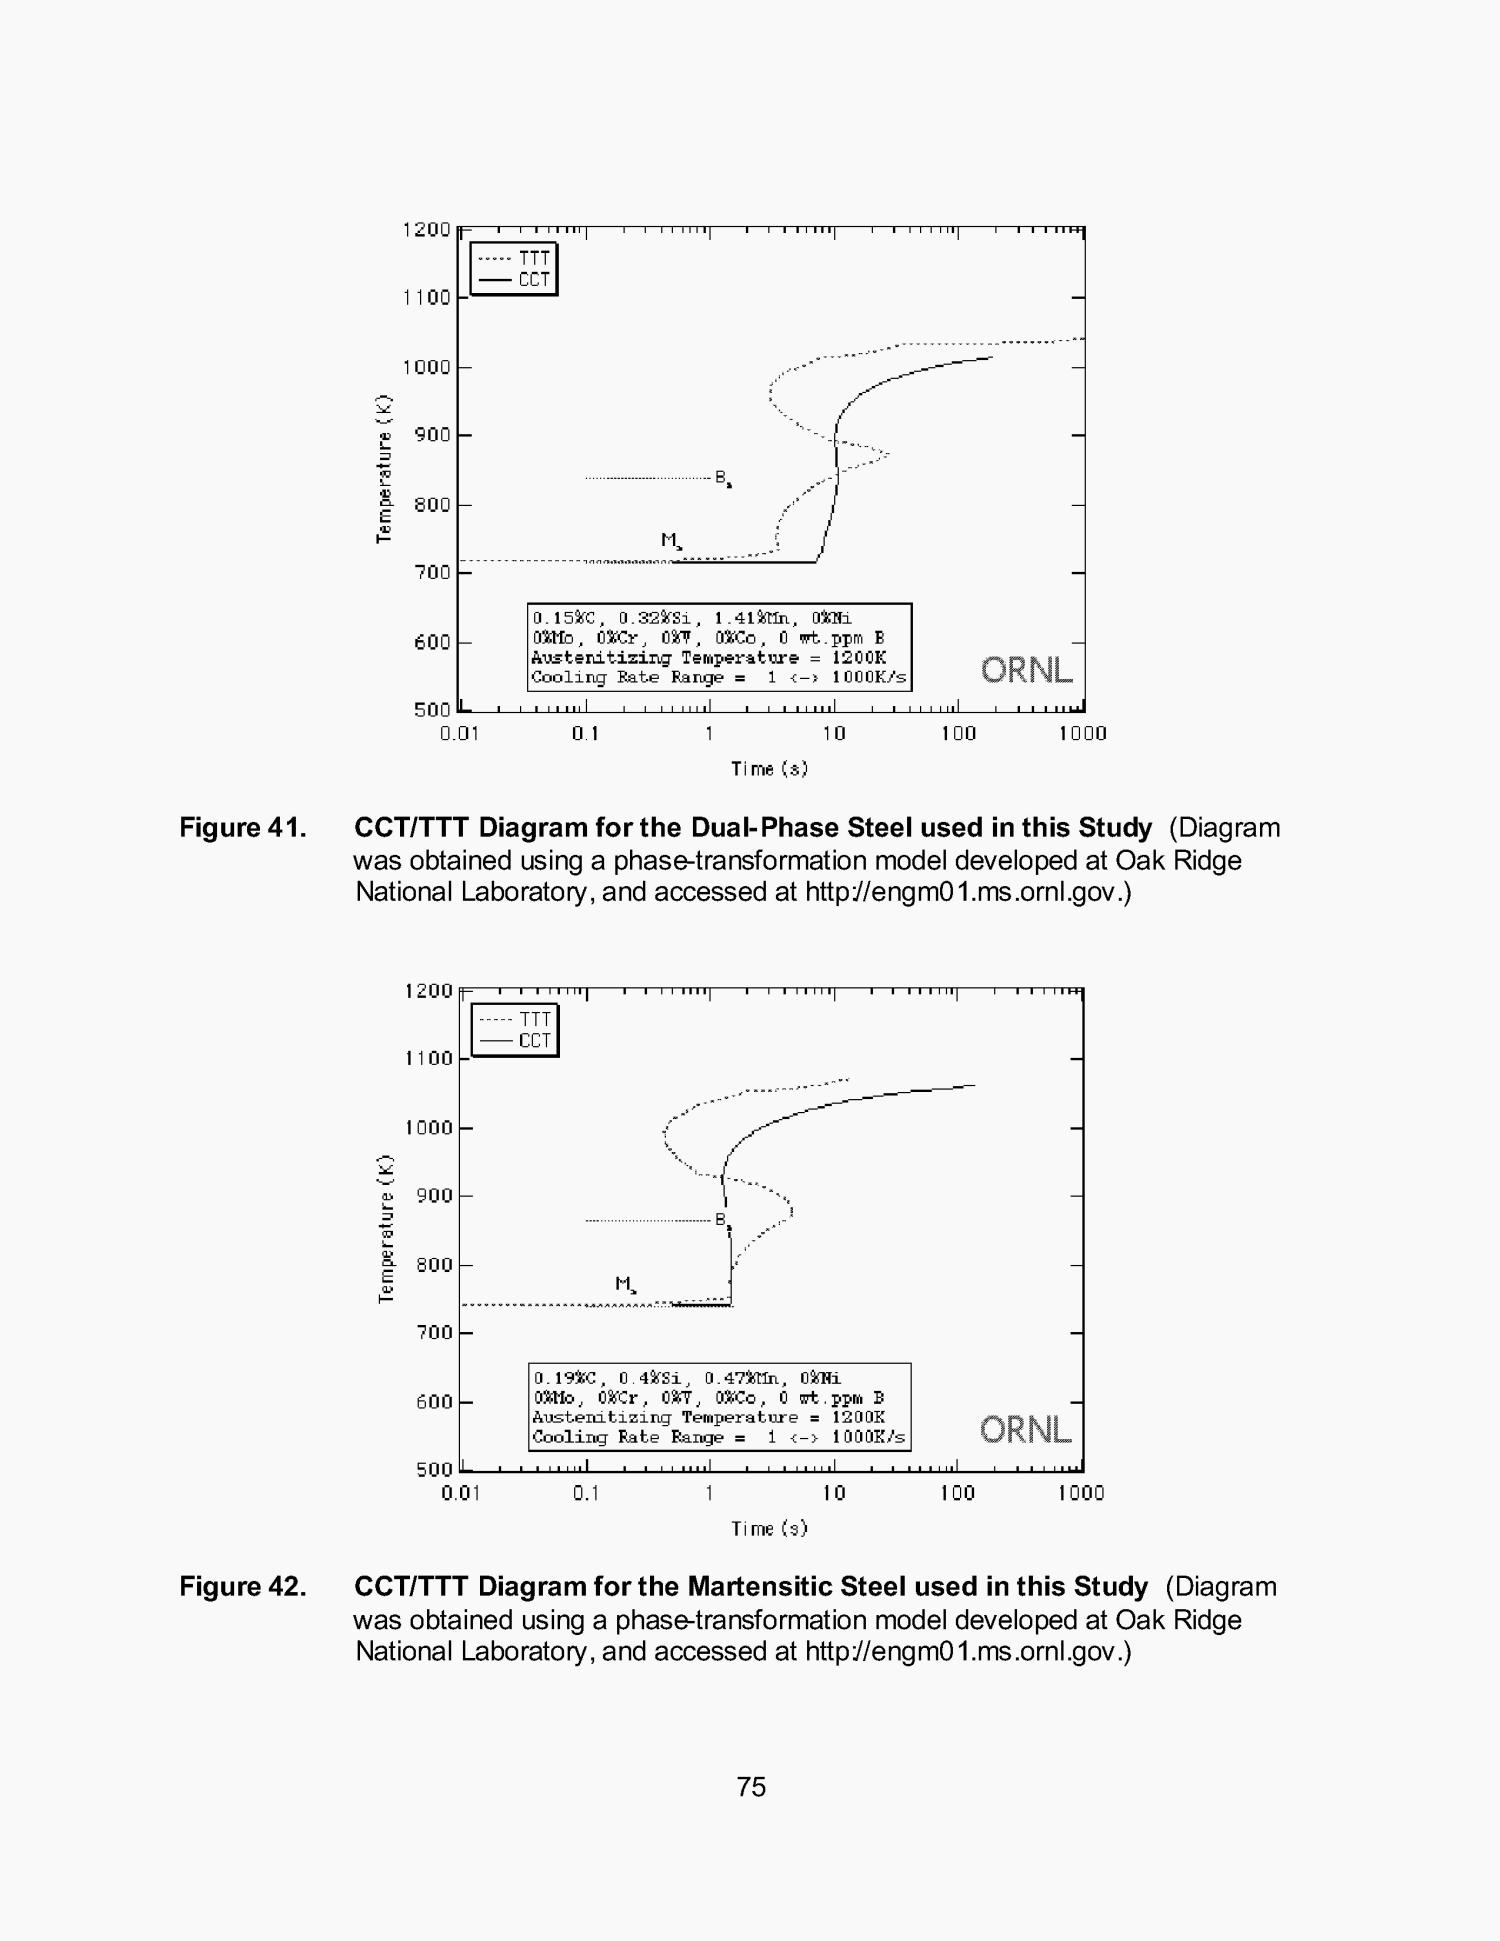 Aisidoe technology roadmap program development of appropriate aisidoe technology roadmap program development of appropriate resistance spot welding practice for transformation hardened steels page 87 of 182 ccuart Image collections